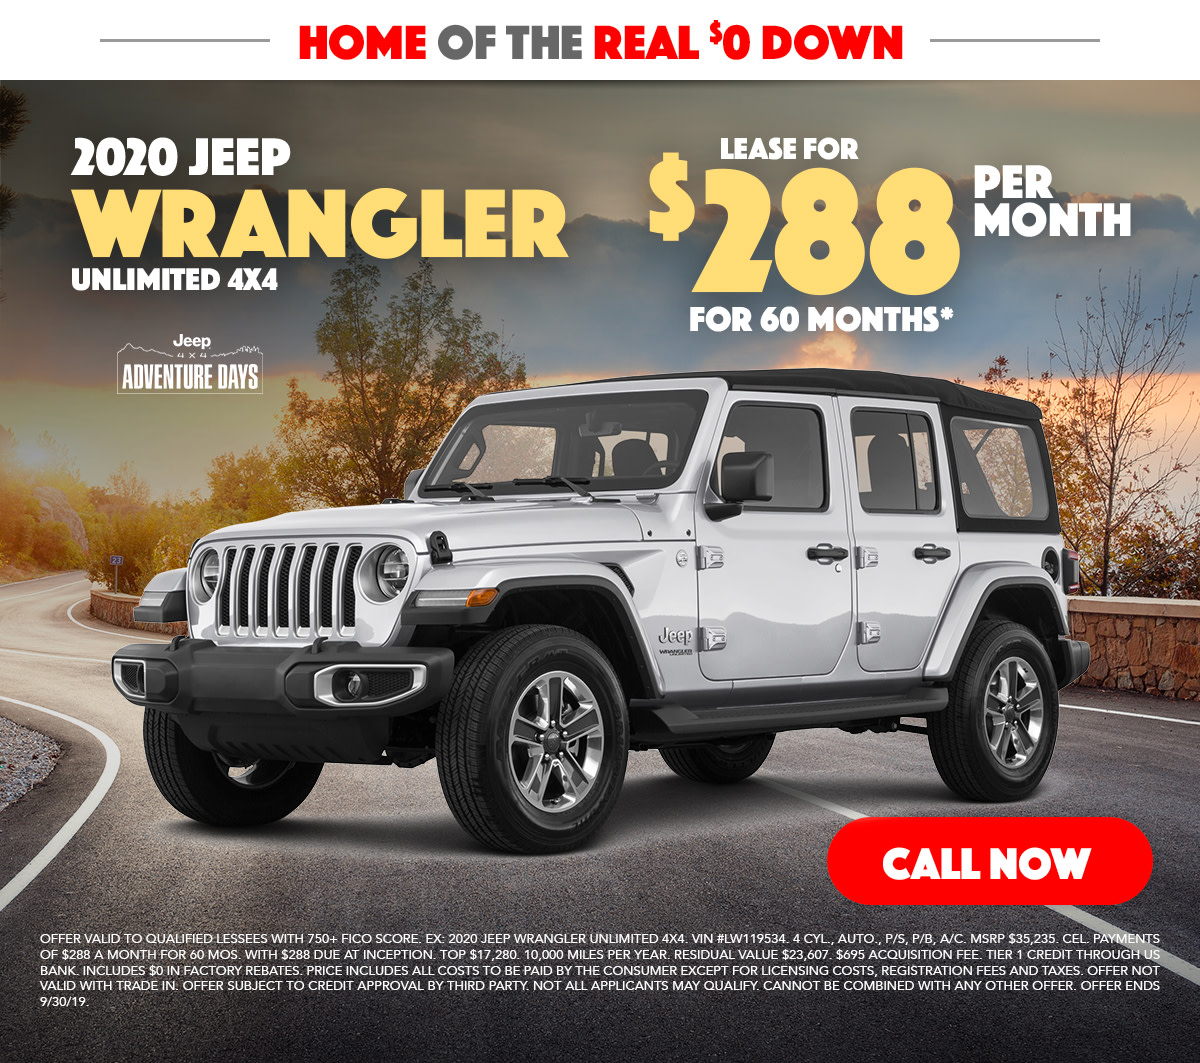 2020 Jeep Wrangler Unlimited Lease Special